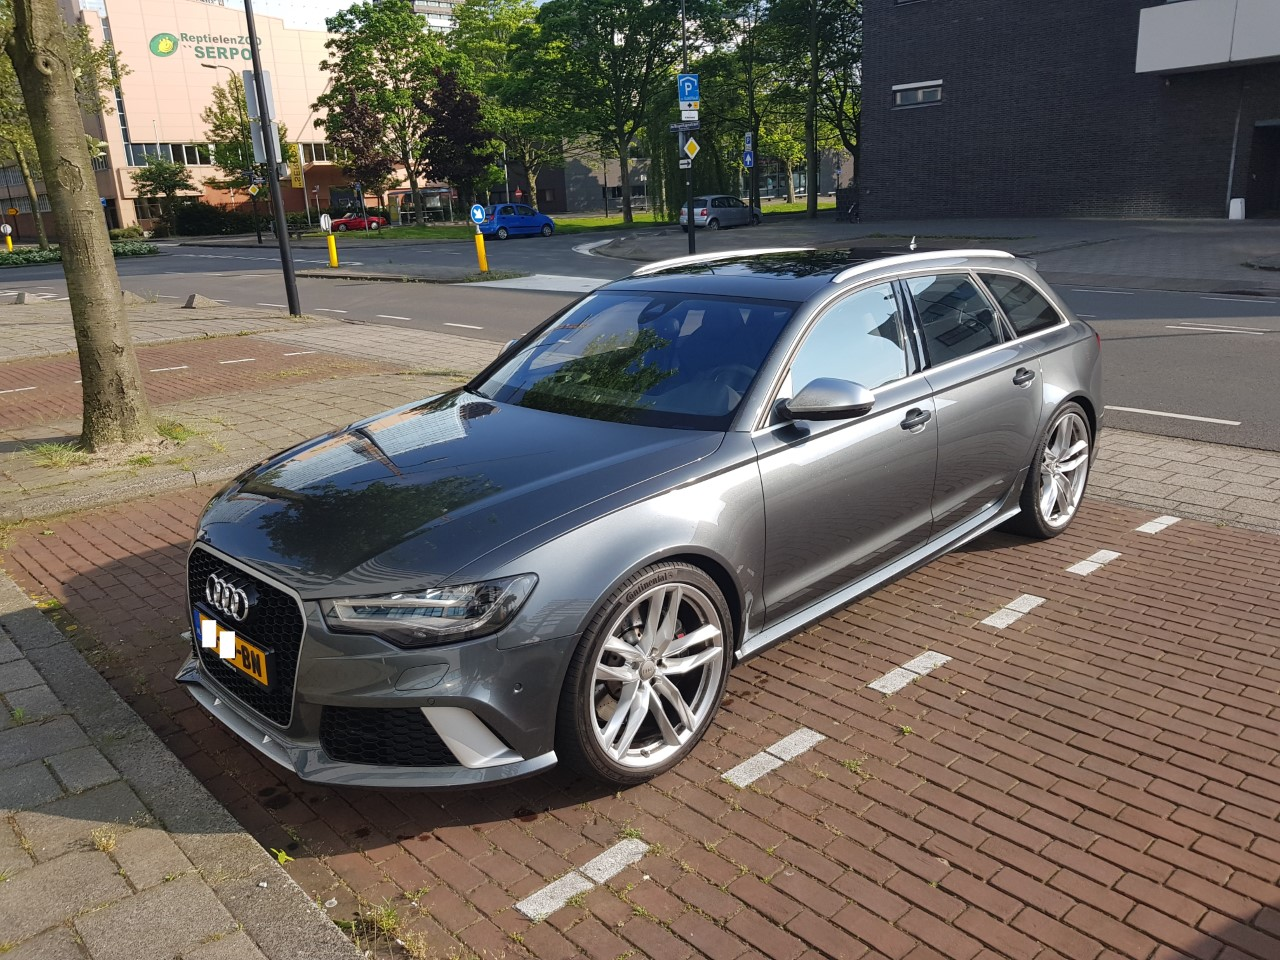 Expatcars24 Expat Cd Bn Plated Cars For Sale In The Netherlands